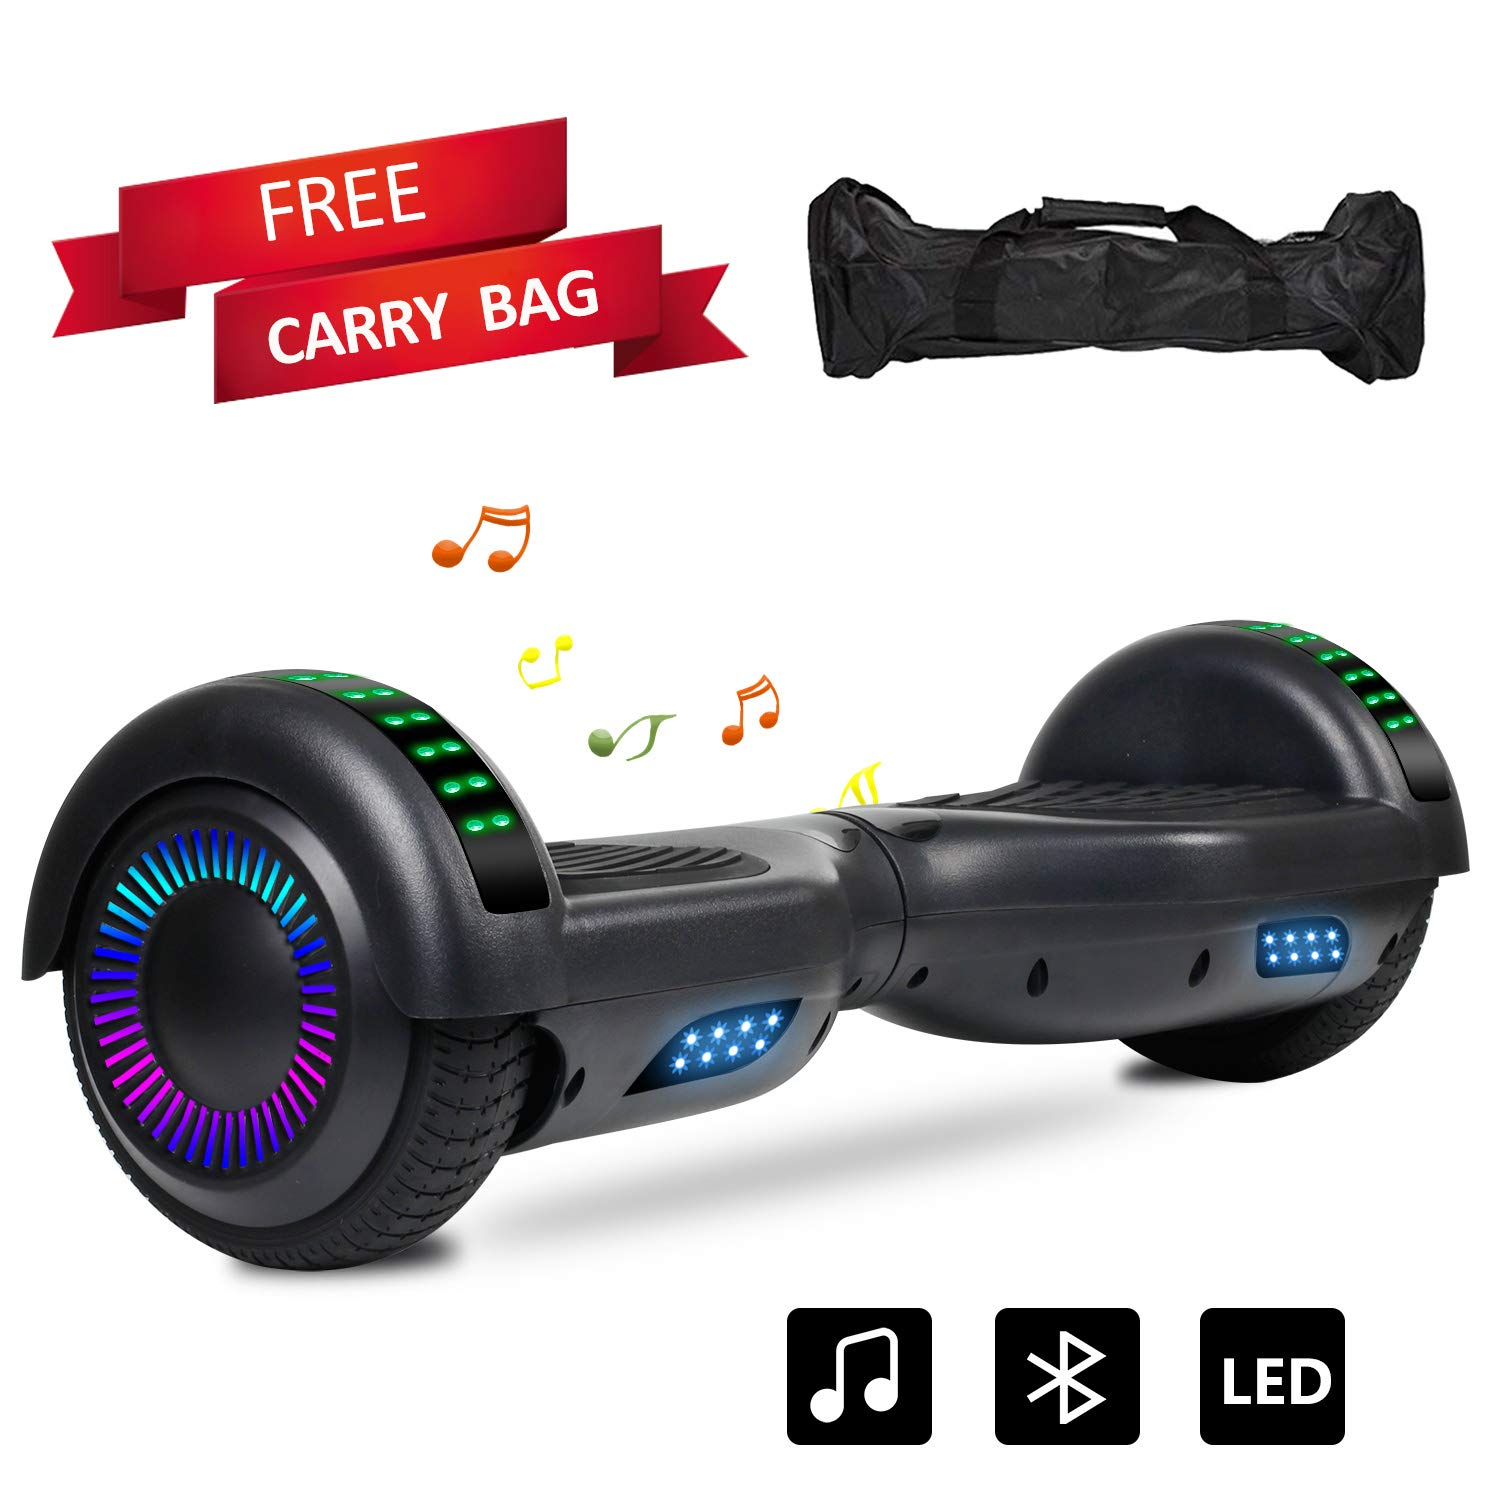 Sea Eagle Hoverboard Two-Wheel Self Balancing Electric Scooter UL 2272 Certified 6.5'' with Bluetooth Speaker and LED Light Flash Lights Wheels (Black)